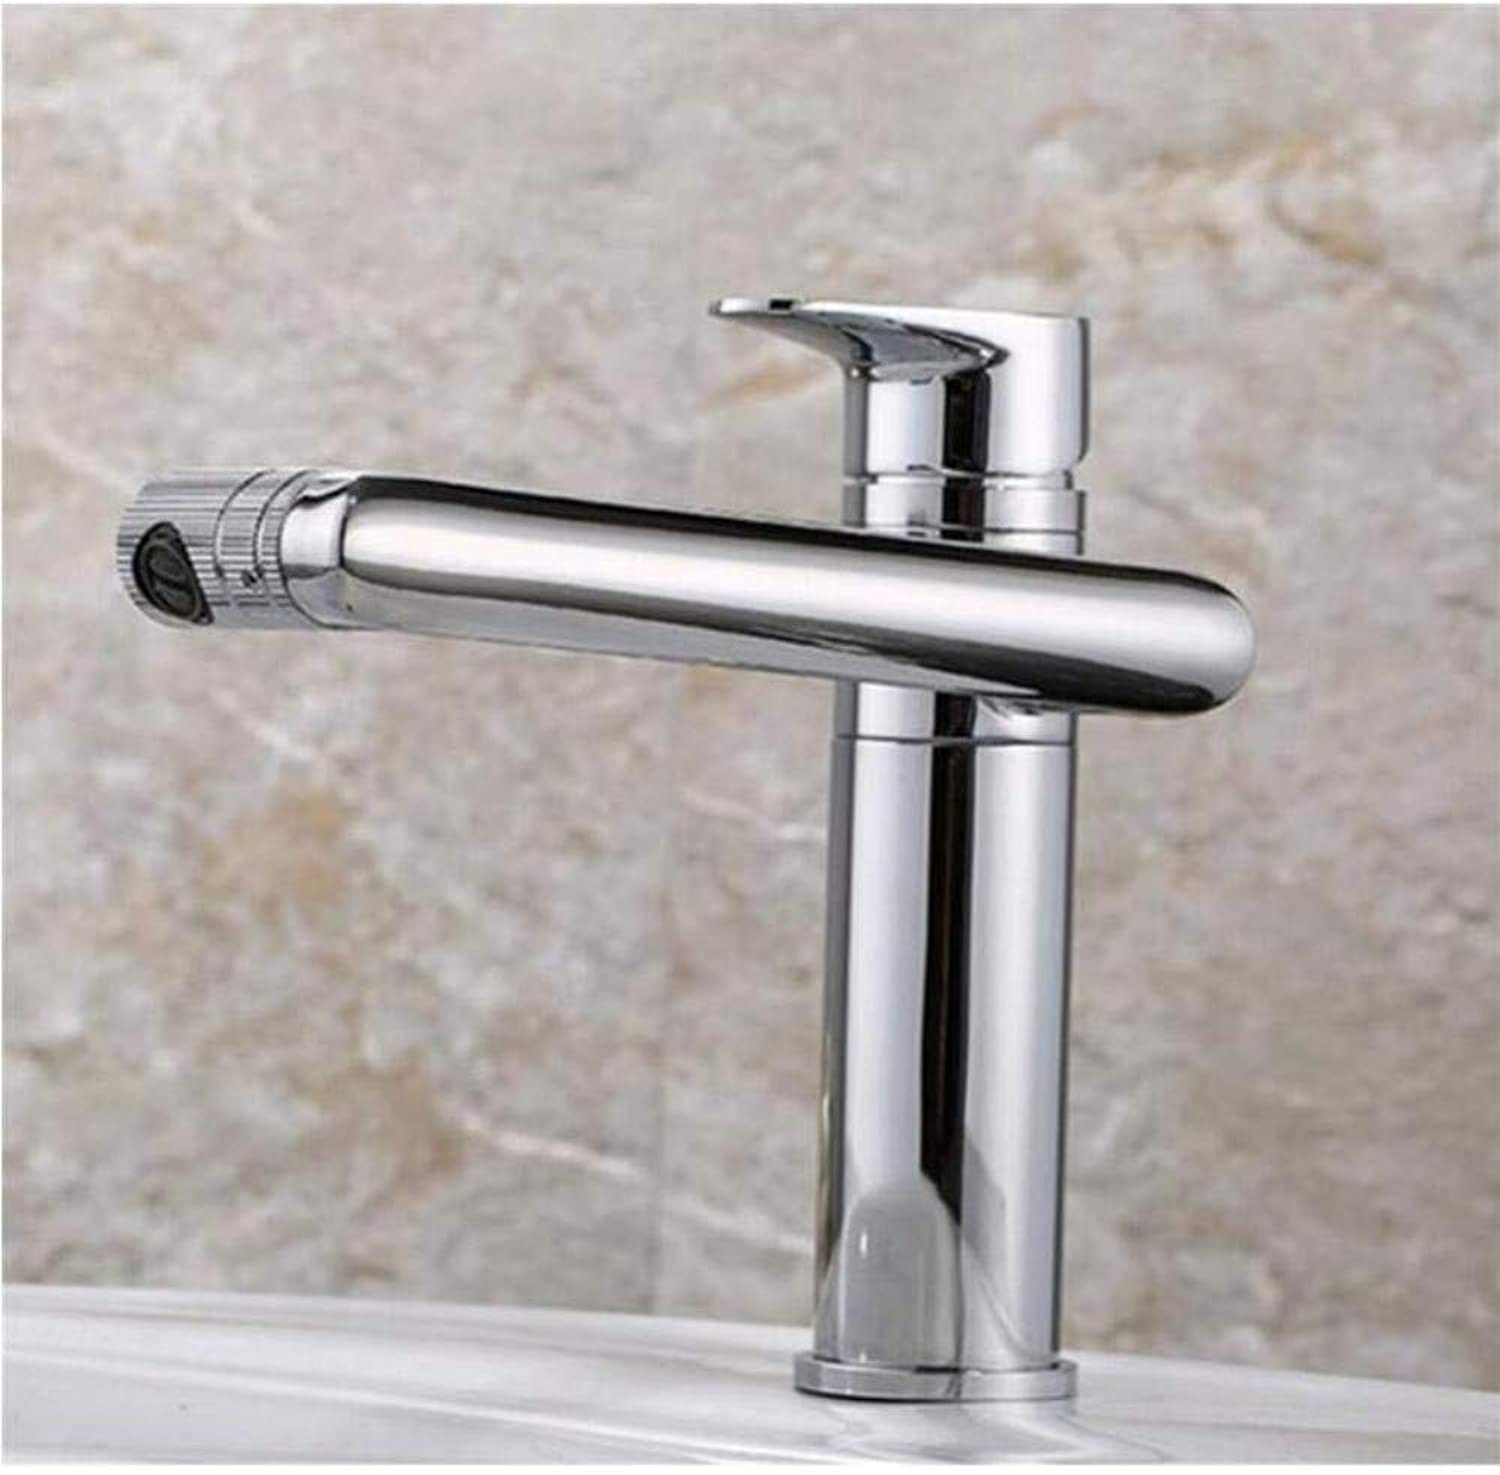 Chrome-Plated Adjustable Temperature-Sensitive Led Faucettap Deck Mounted Hot&Cold Sink Mixer Tap Faucet